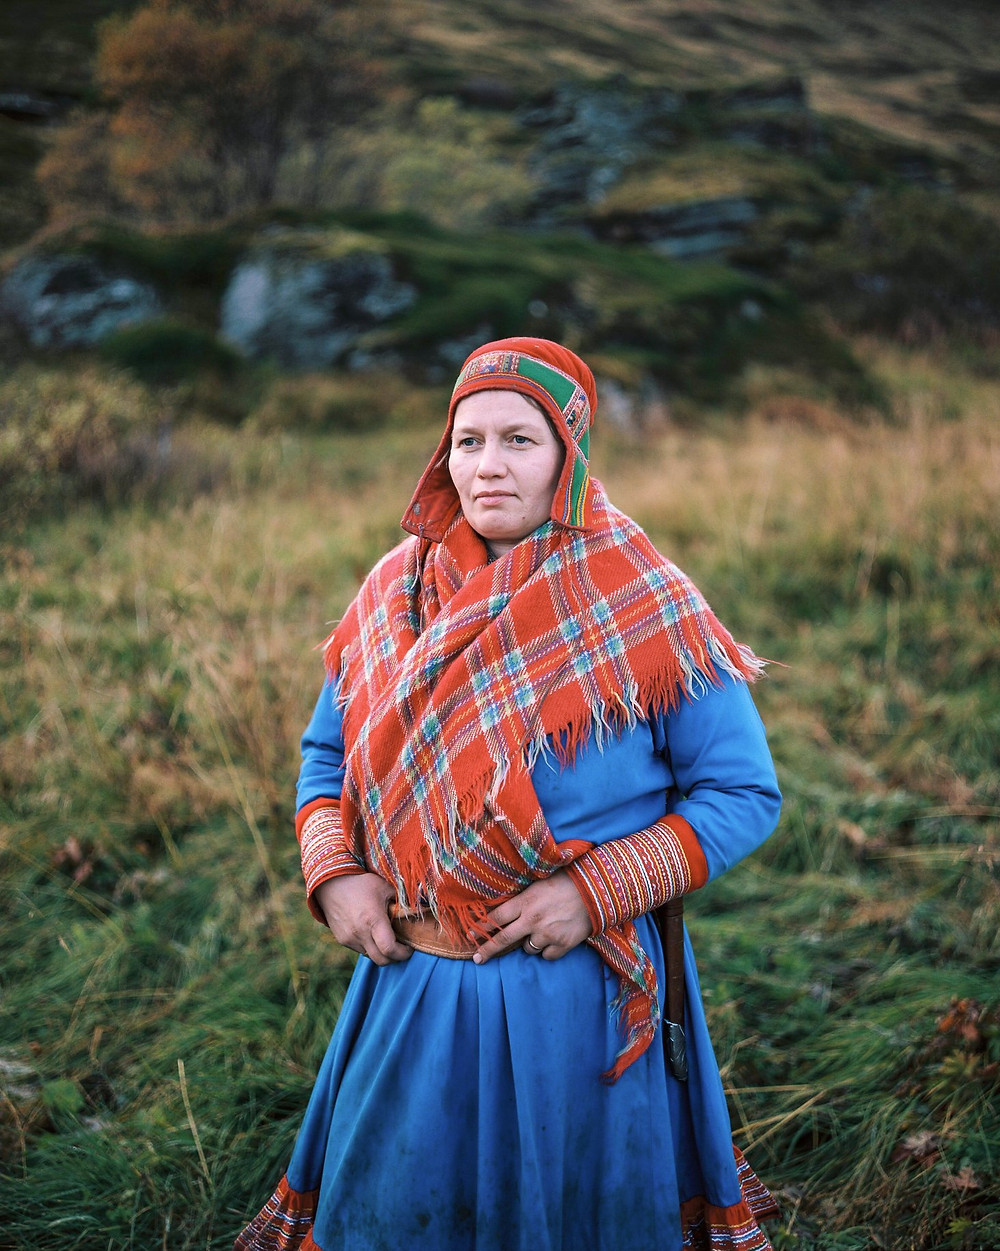 Book a stay with a Sami reindeer herder family in Northern Norway and explore the unique Sami & reindeer herding culture